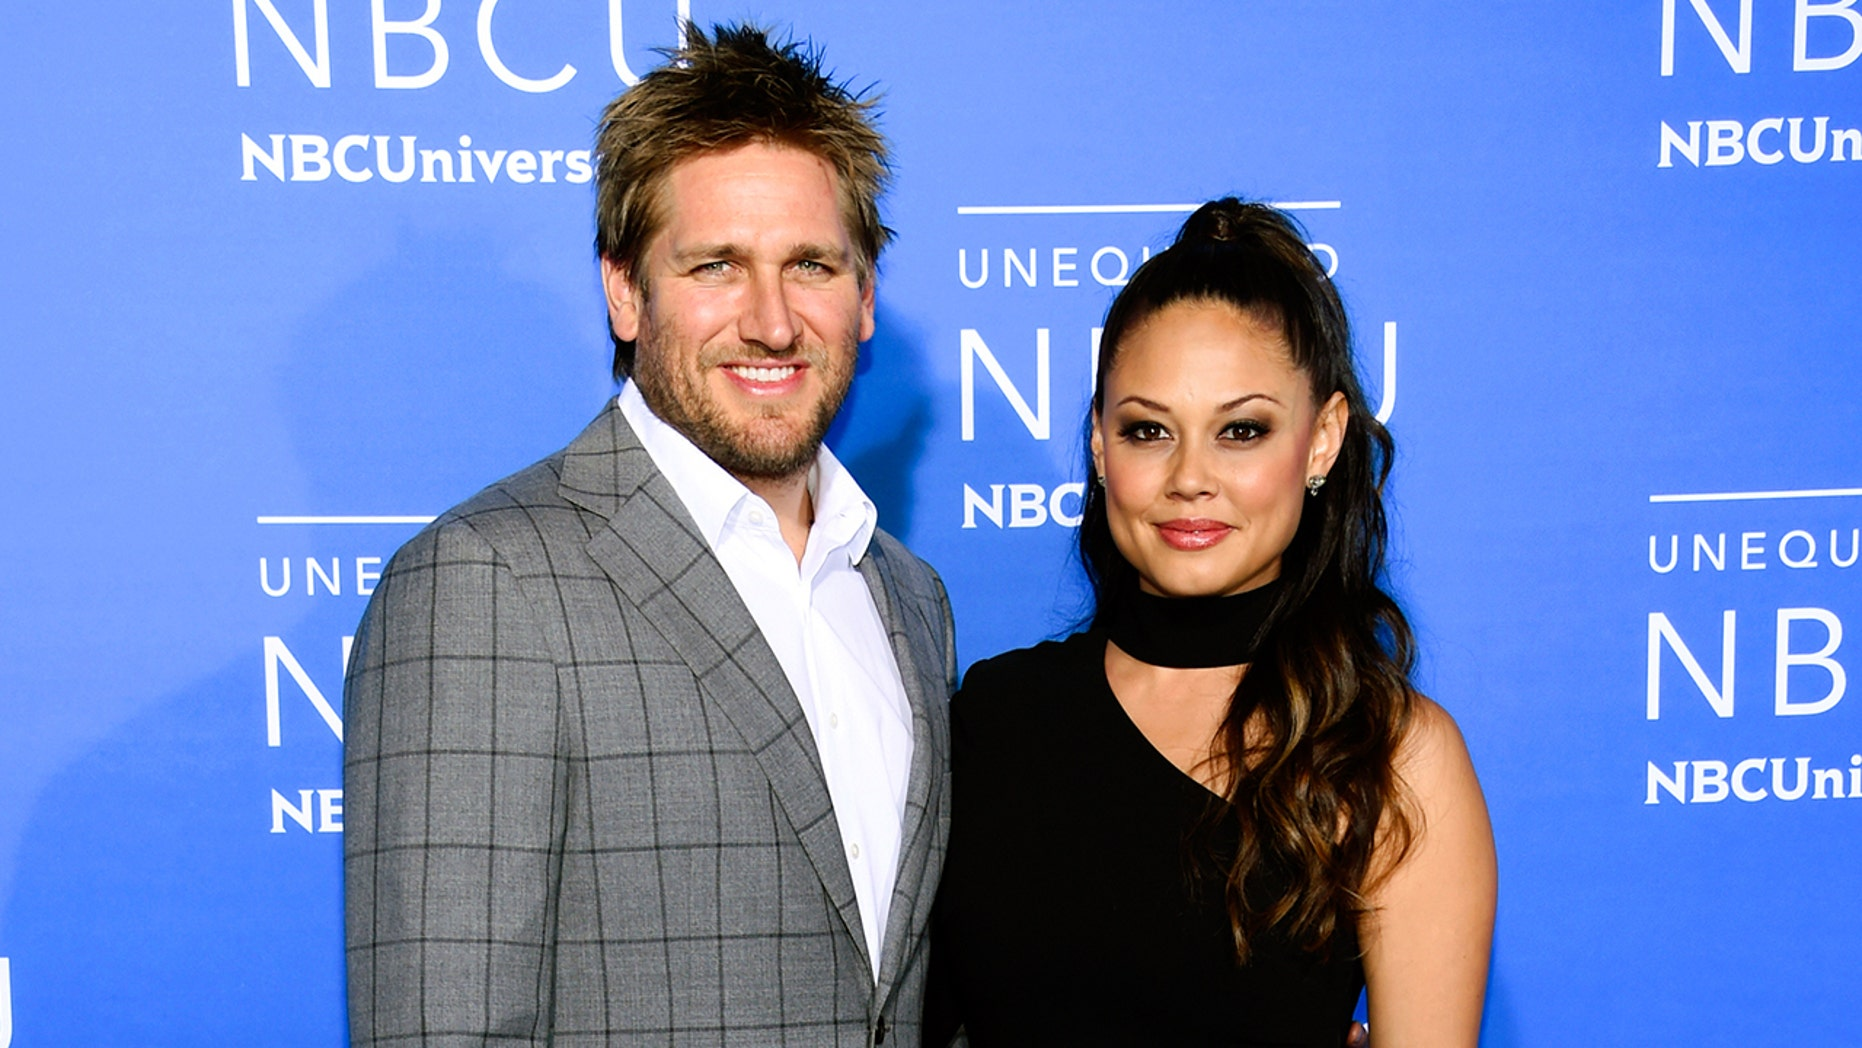 """Top Chef Juniors"" co-hosts Curtis Stone, left, and Vanessa Lachey attend the NBCUniversal Network 2017 Upfront at Radio City Music Hall on Monday, May 15, 2017, in New York."